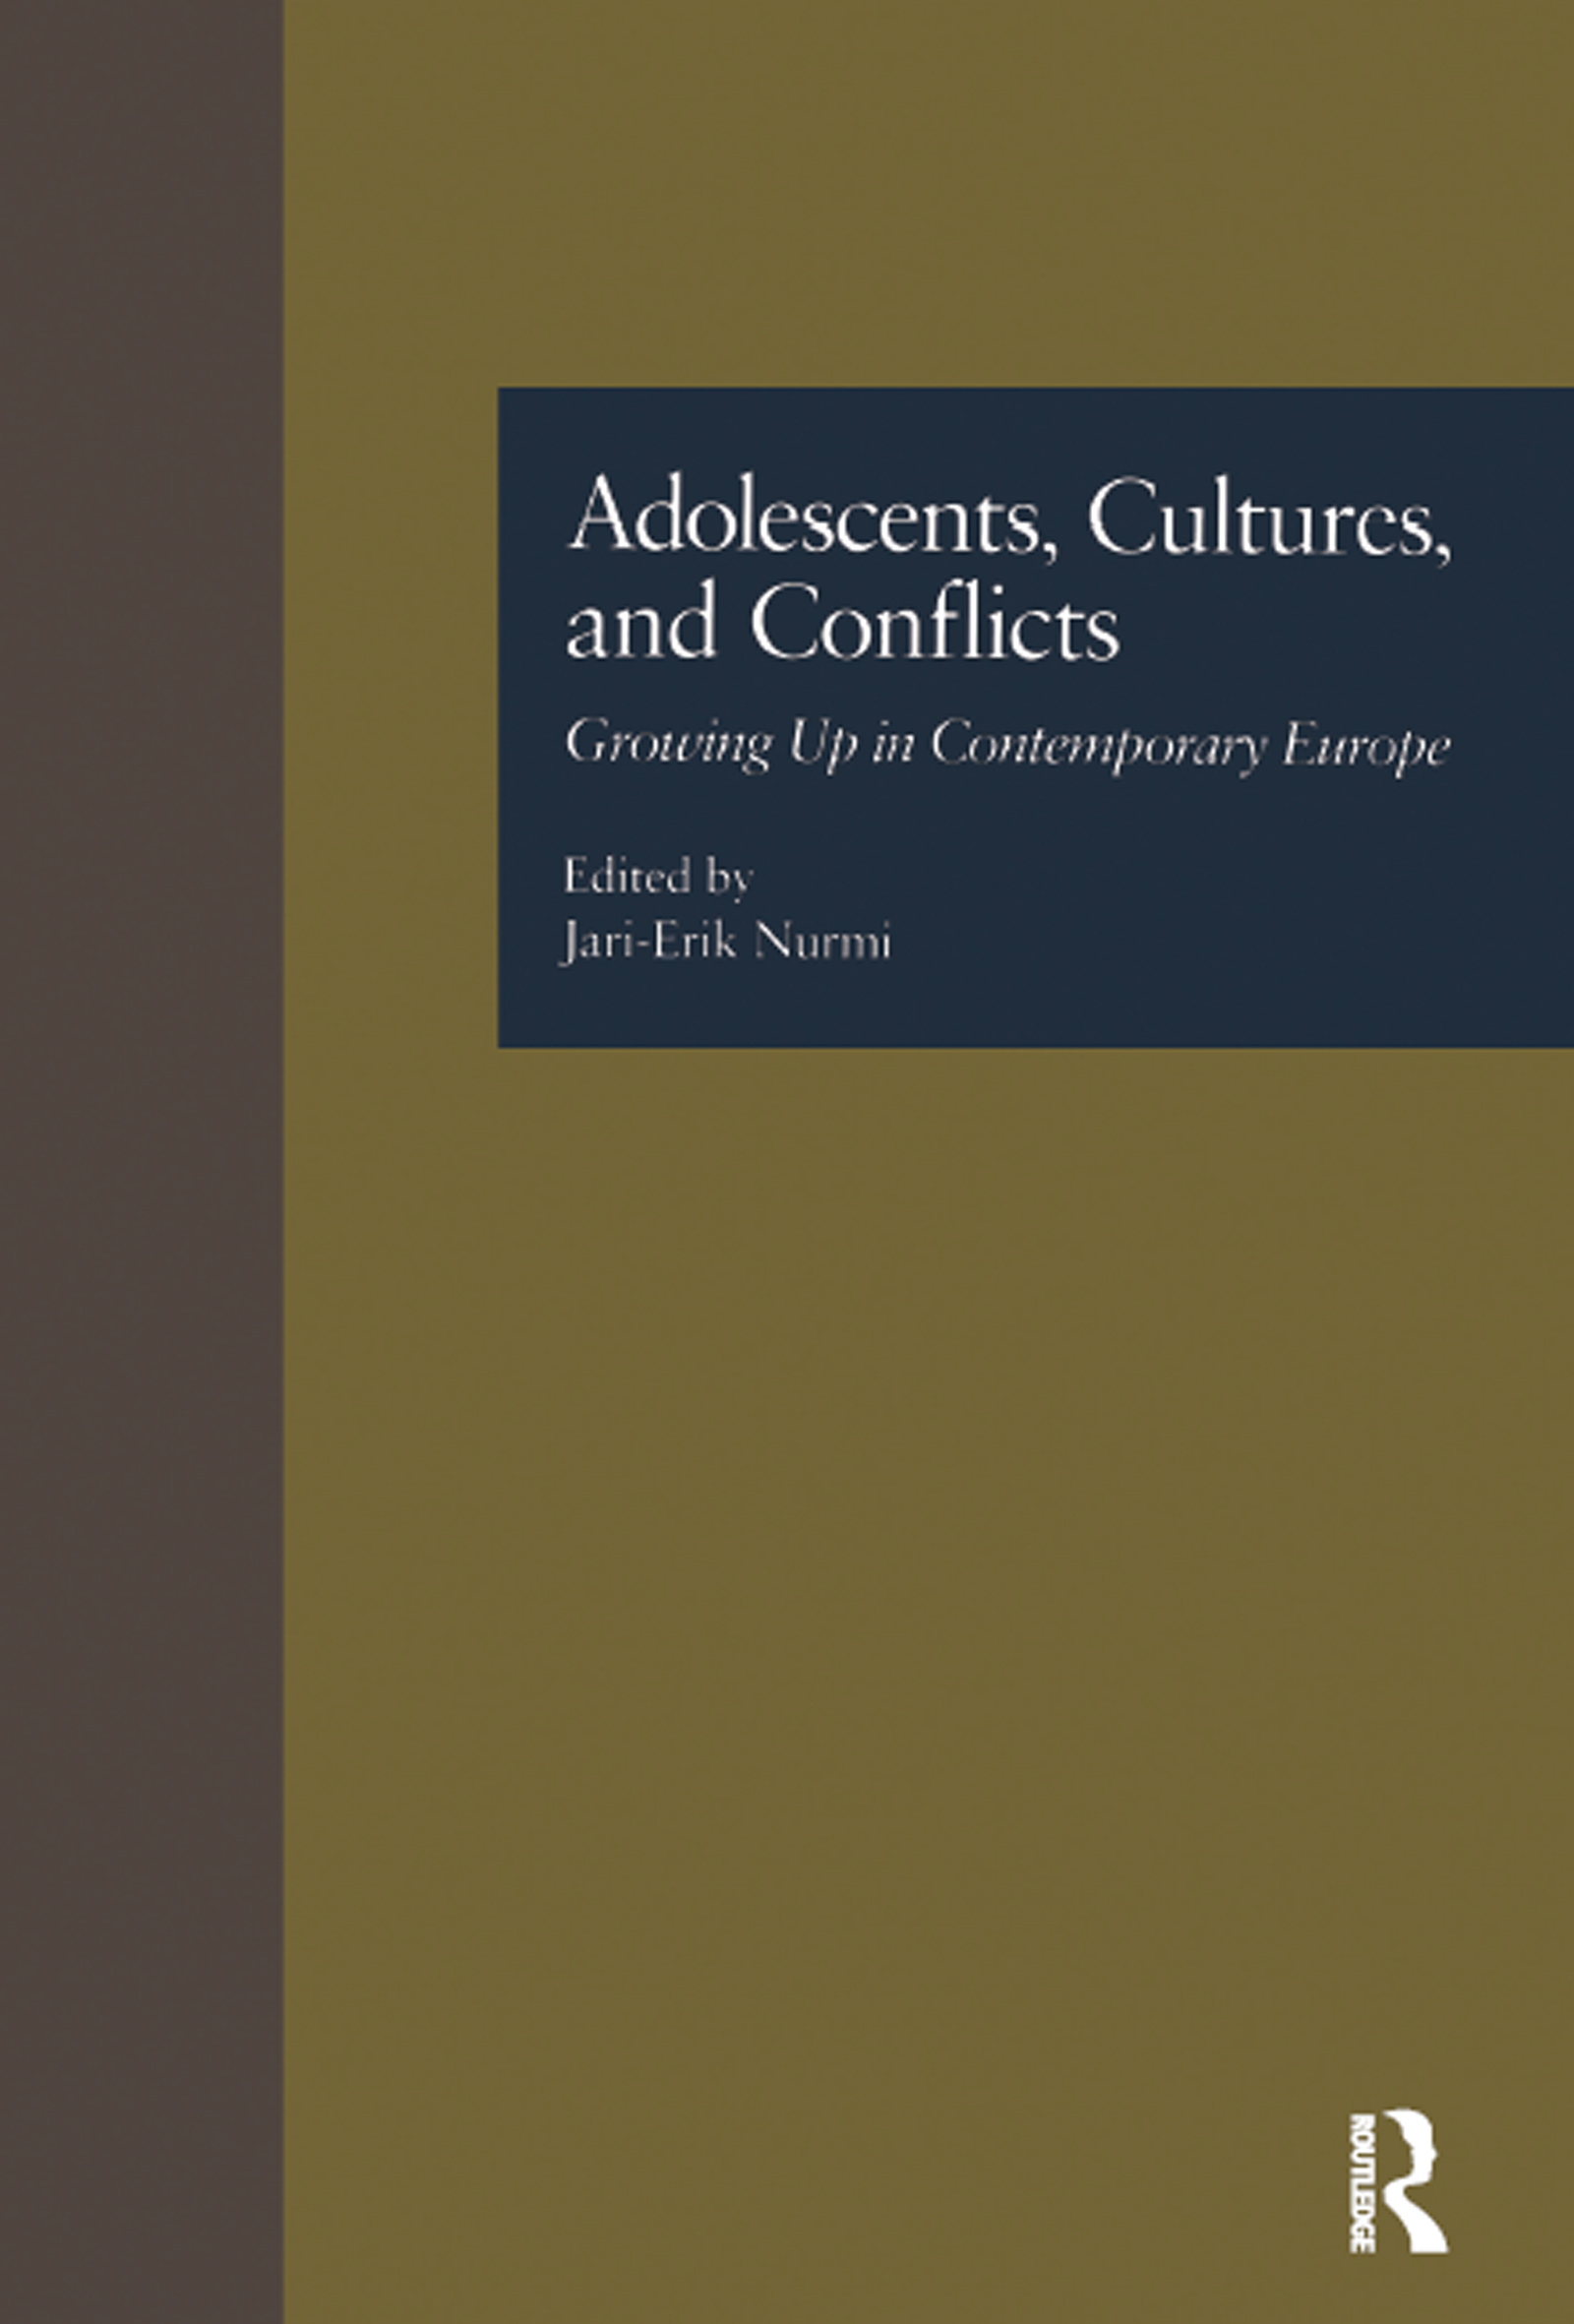 Adolescents, Cultures, and Conflicts: Growing Up in Contemporary Europe book cover